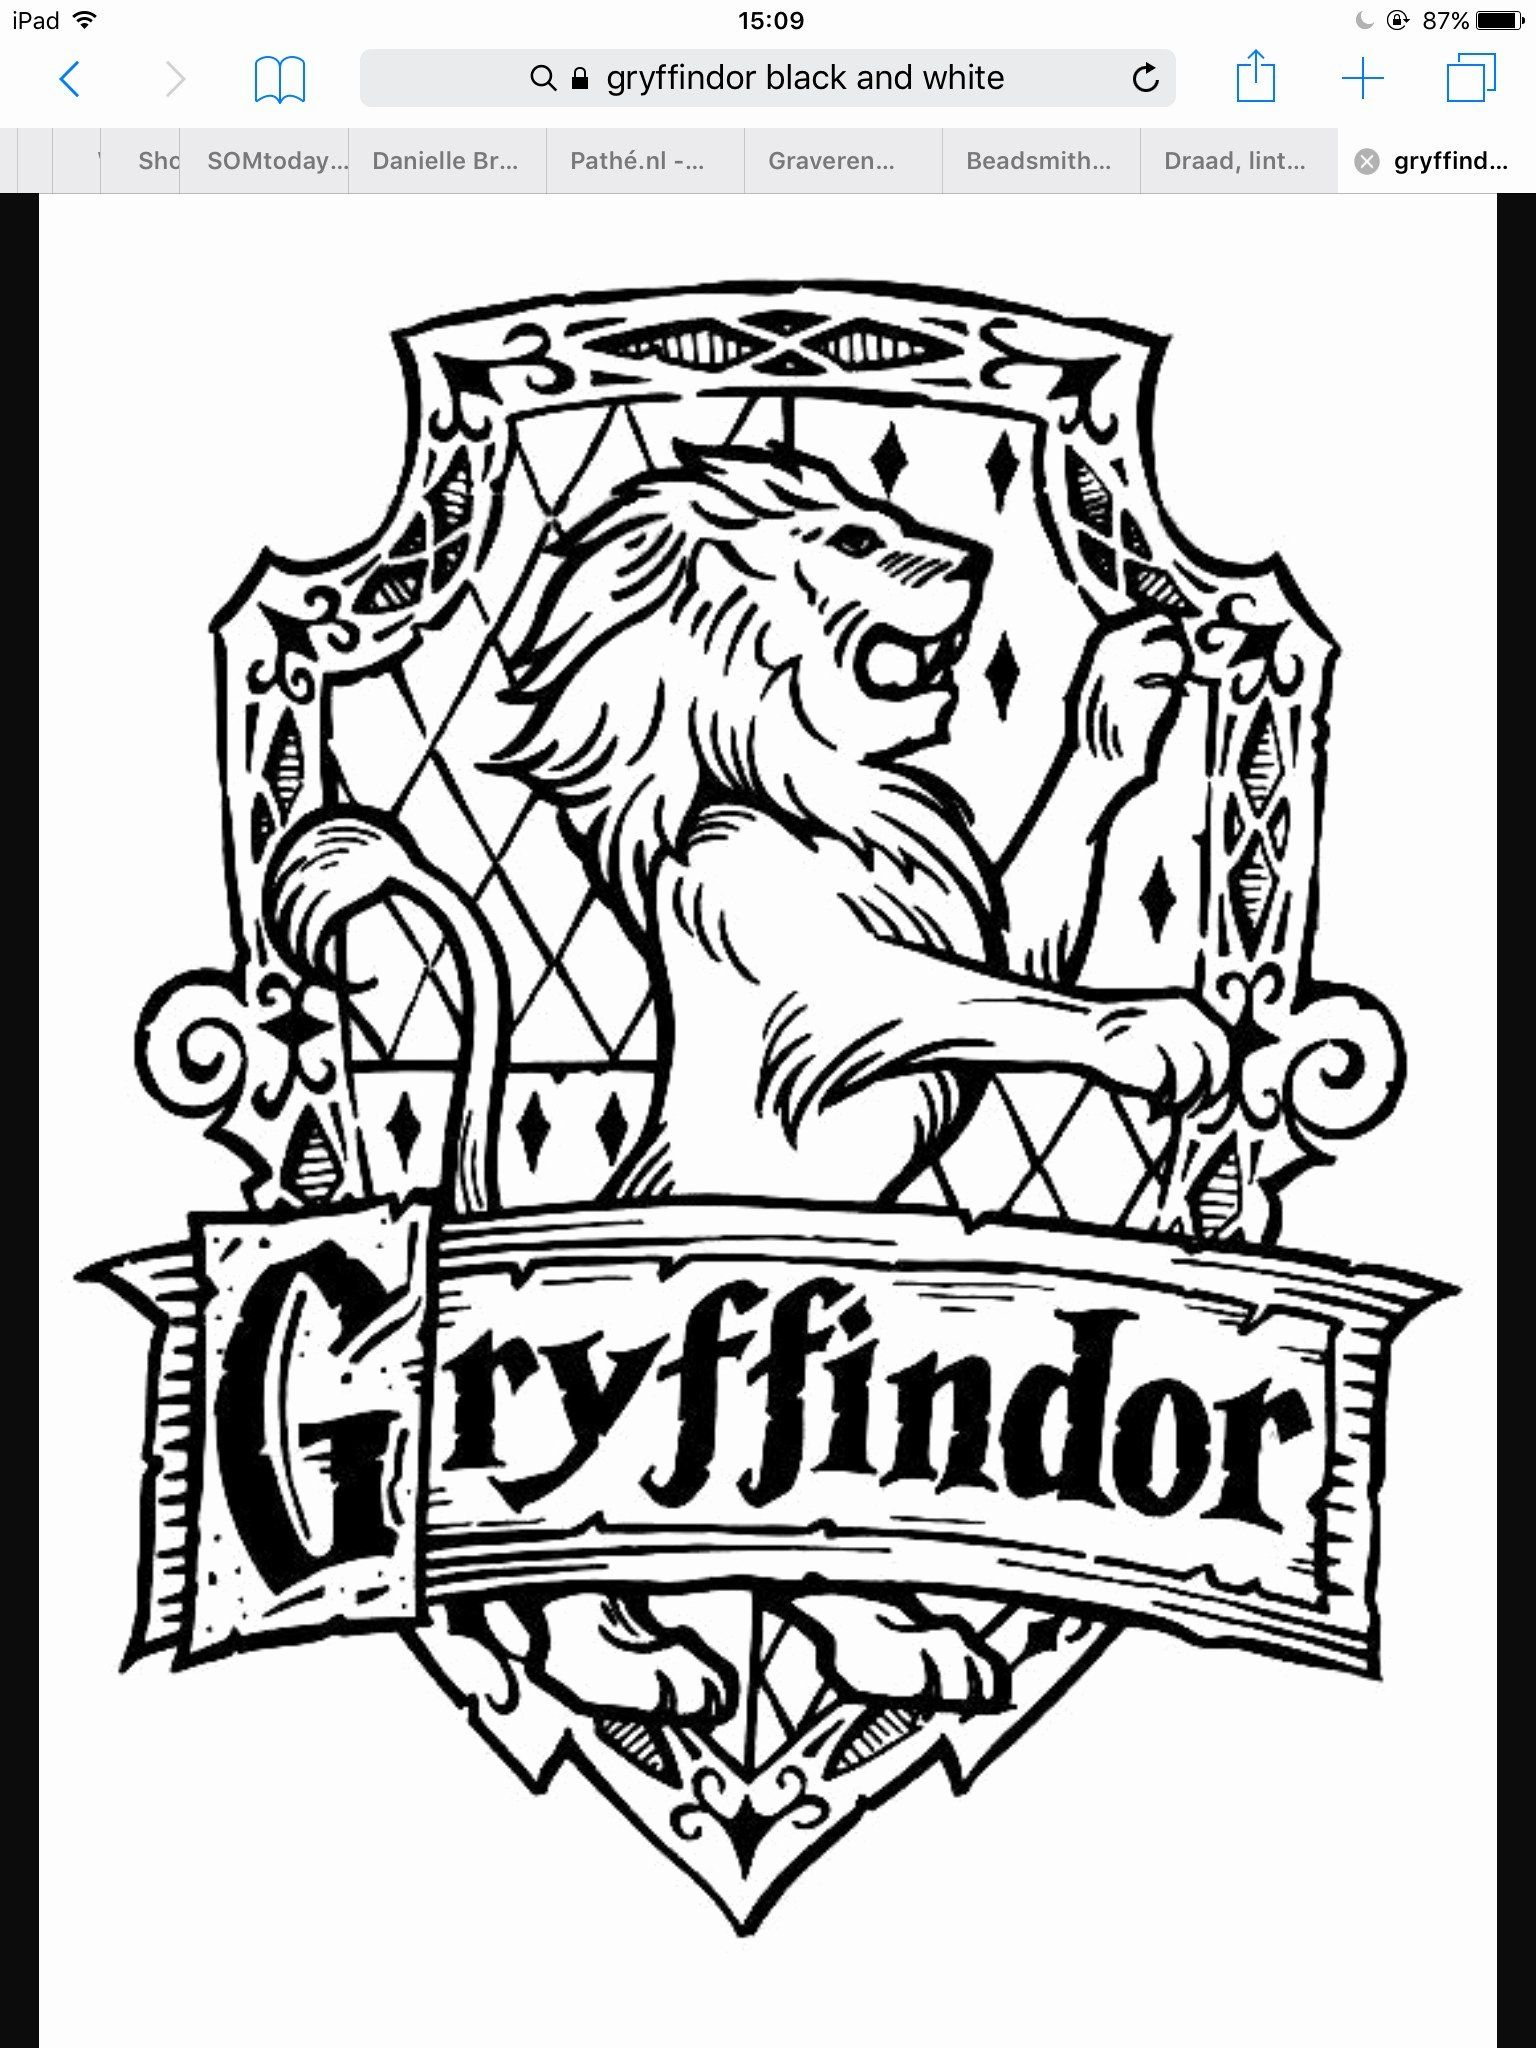 Harry Potter Coloring Book Inspirational Harry Potter House Coloring Pages At Ge Harry Potter Coloring Pages Harry Potter Printables Harry Potter Coloring Book